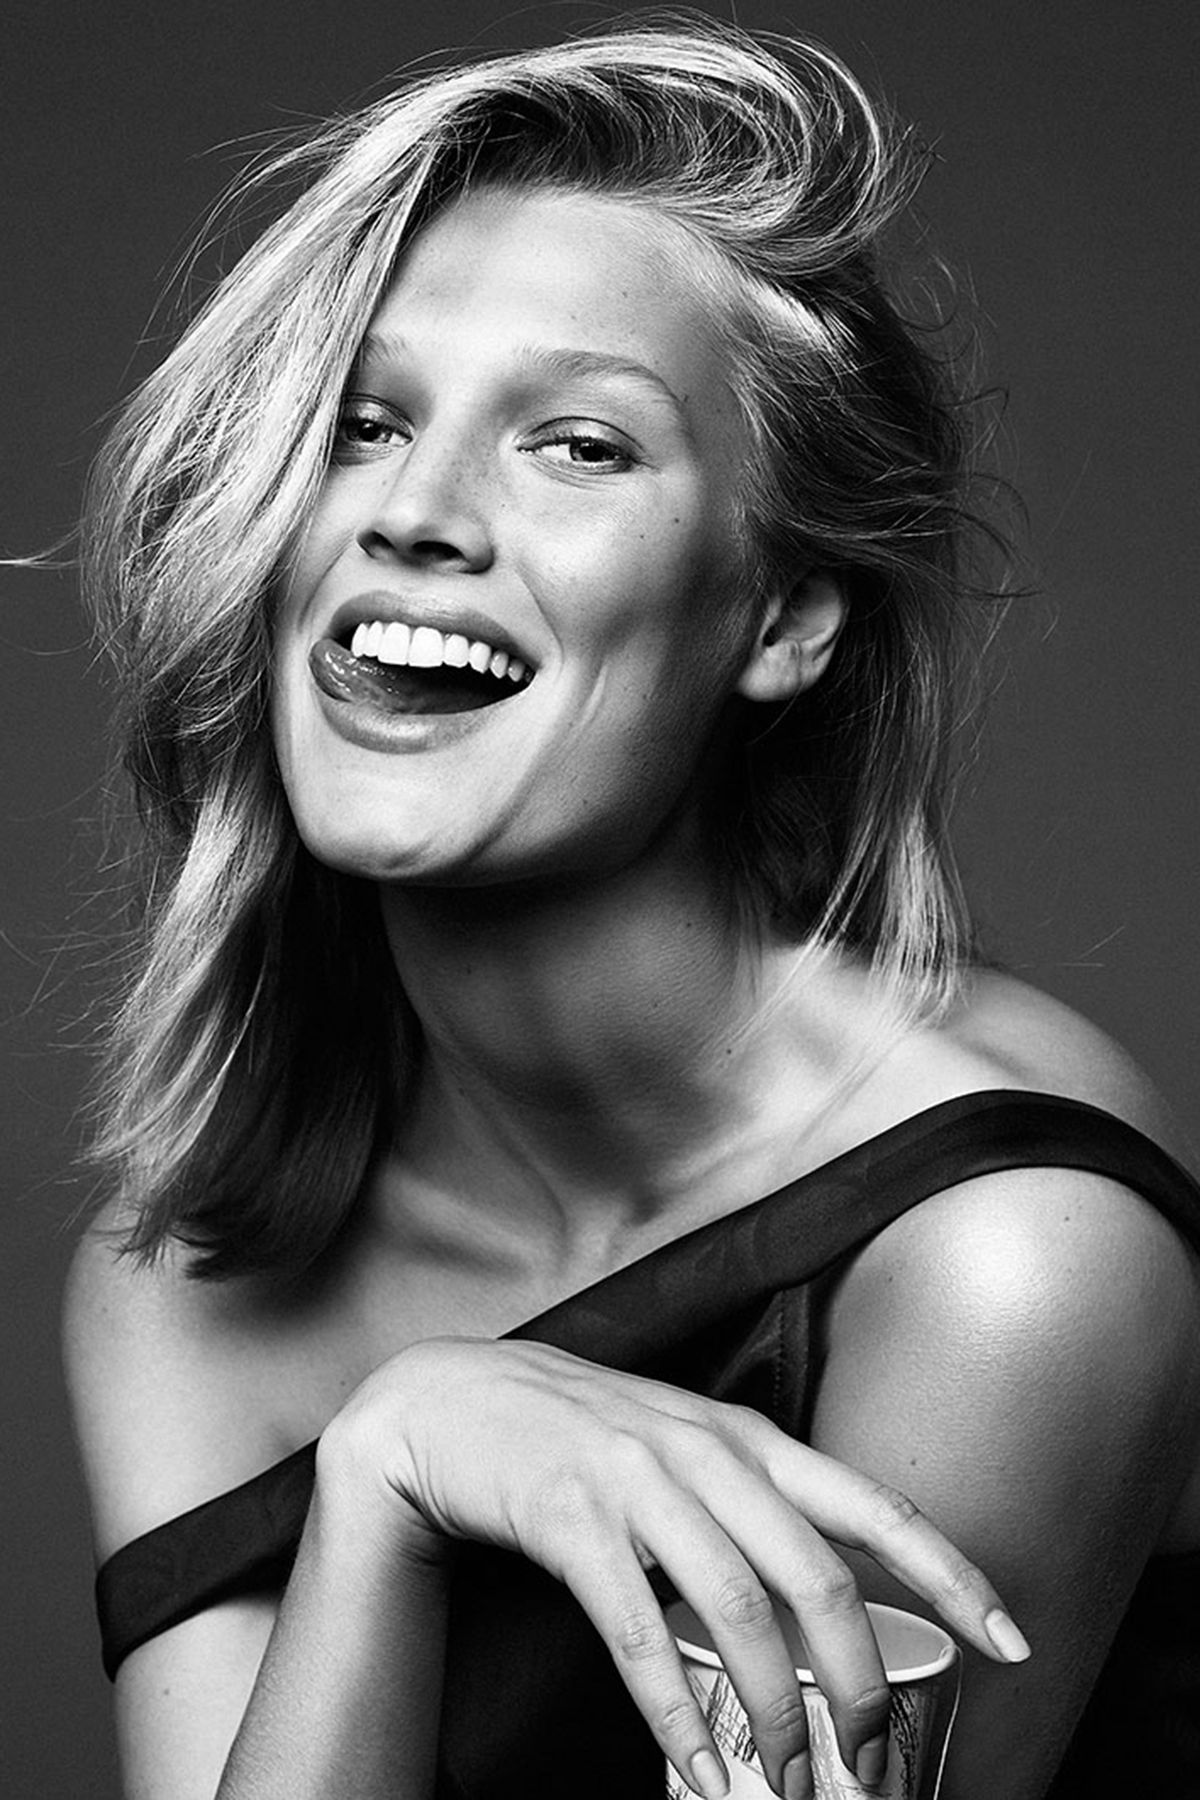 Selfie Antonia Toni Garrn naked (29 foto and video), Pussy, Fappening, Selfie, cameltoe 2019